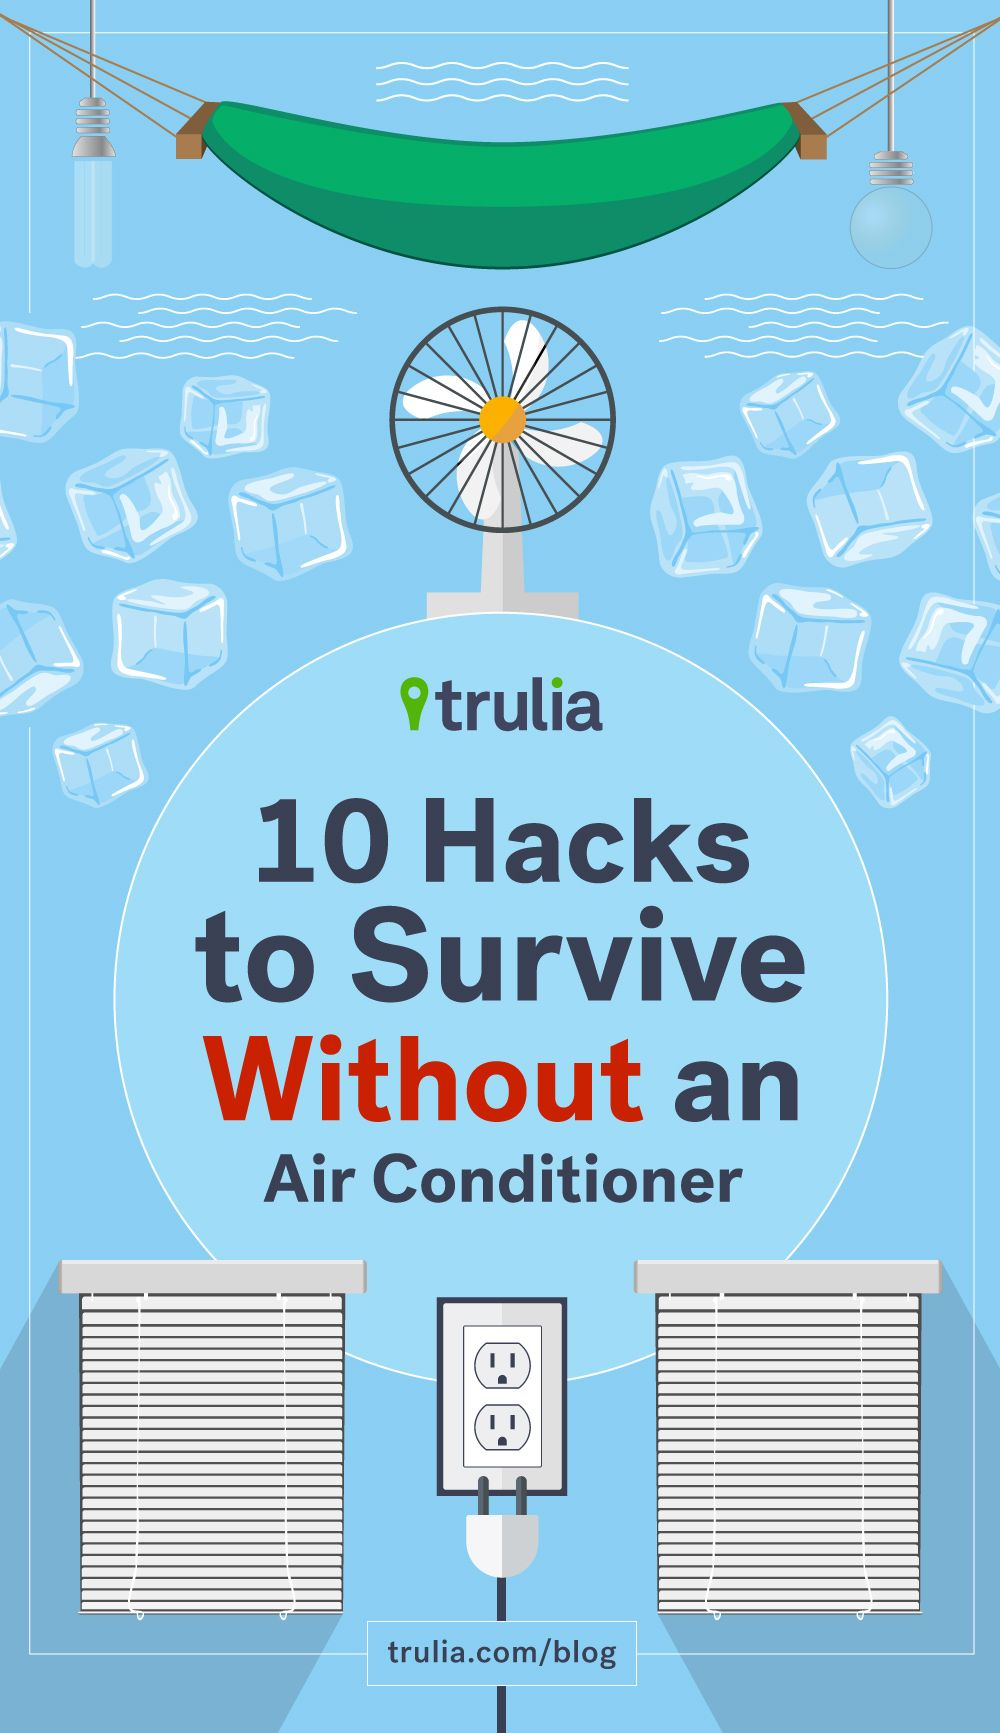 10 Hacks To Survive Without An Air Conditioner Trulia S Blog Life At Home Diy Air Conditioner Homemade Air Conditioner Air Conditioner